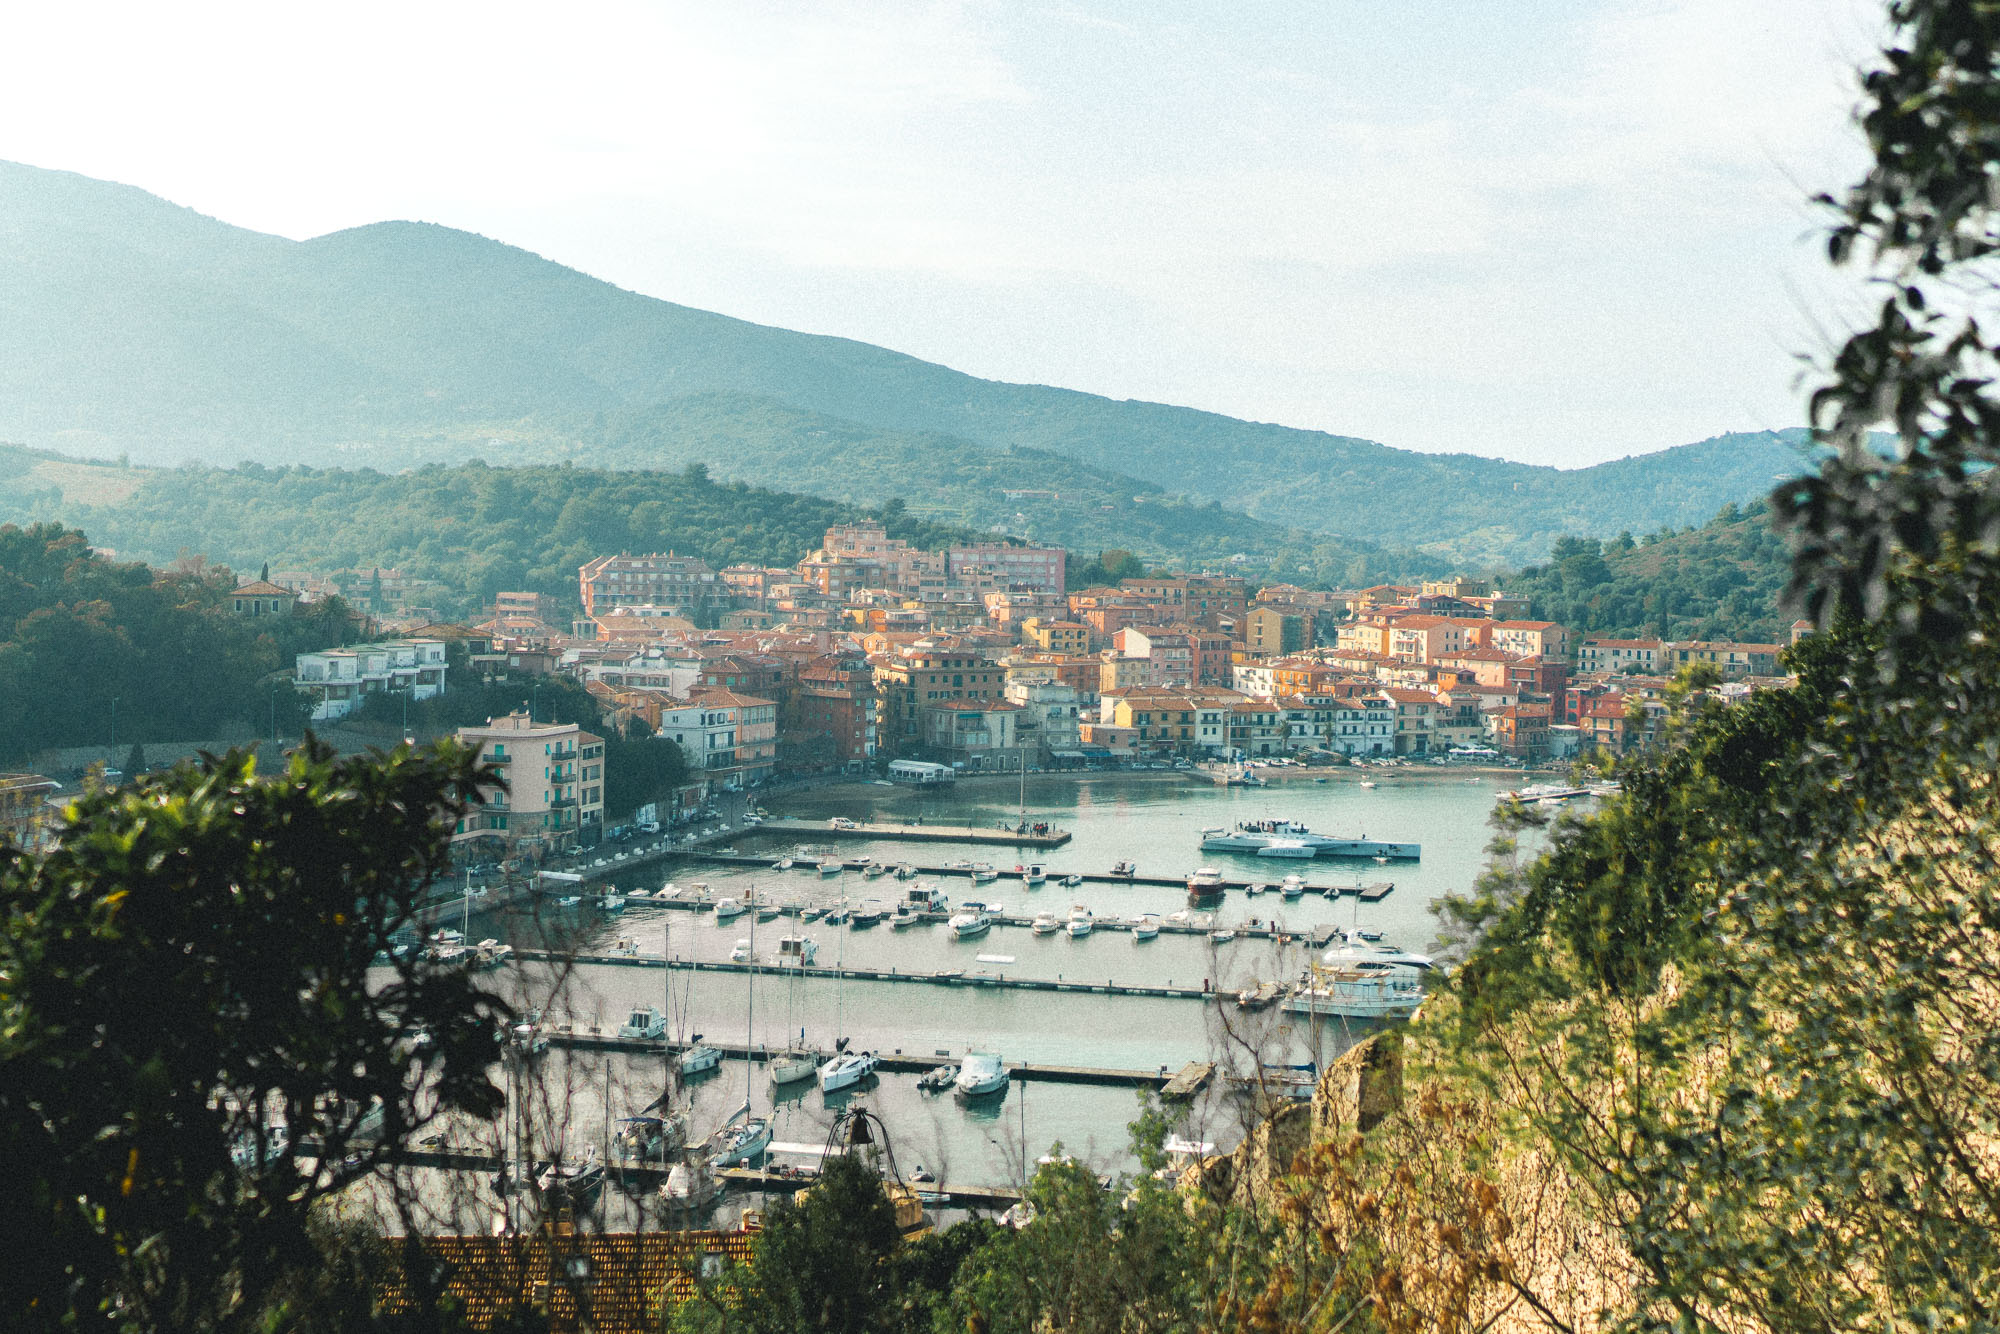 Porto Ercole seaside town, southern Tuscany, Italy